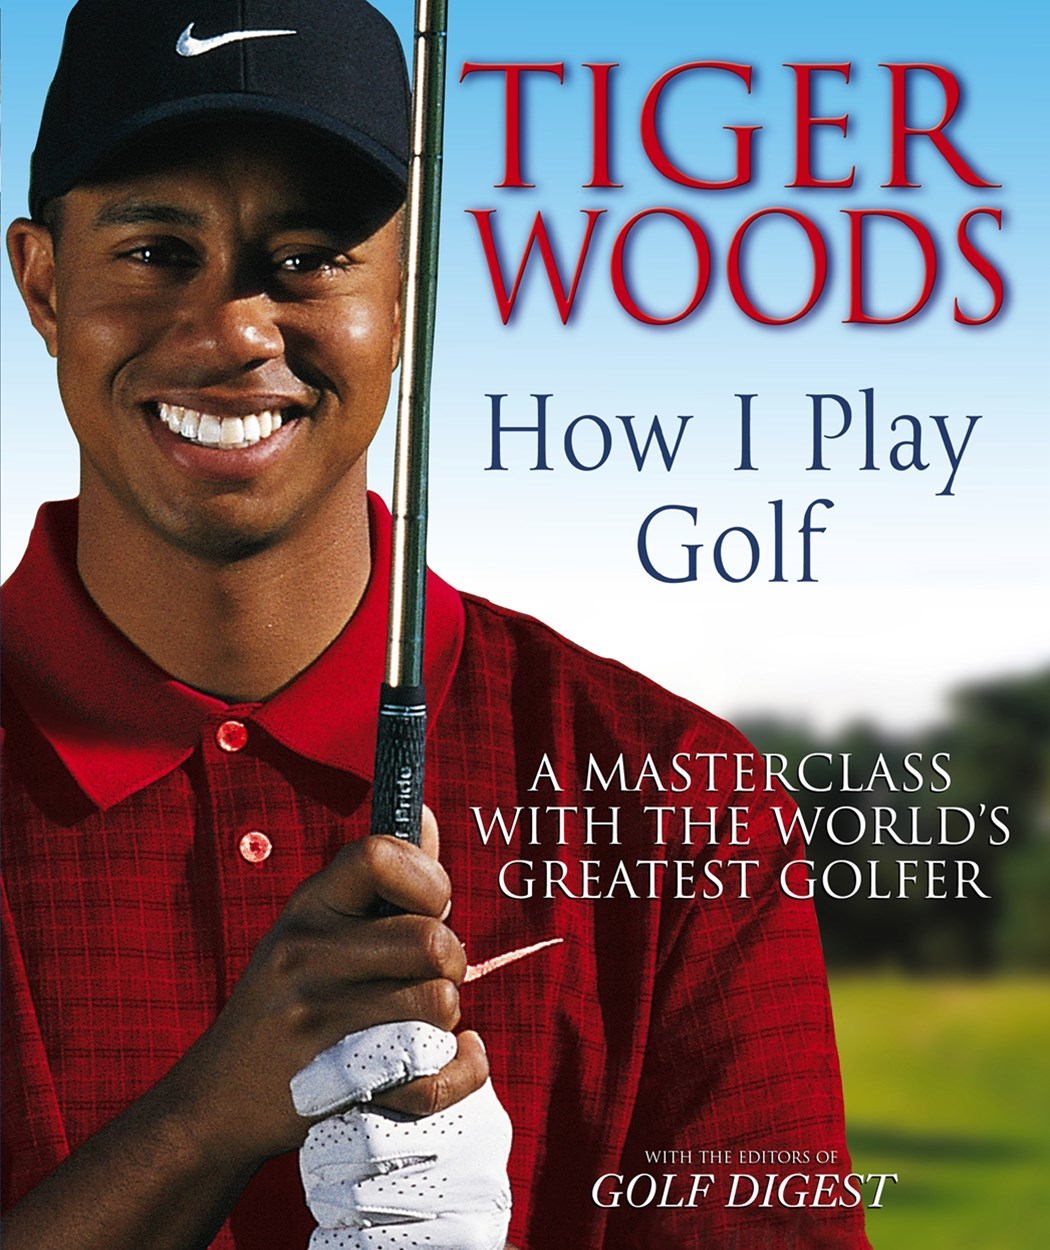 Tiger Woods: How I Play Golf